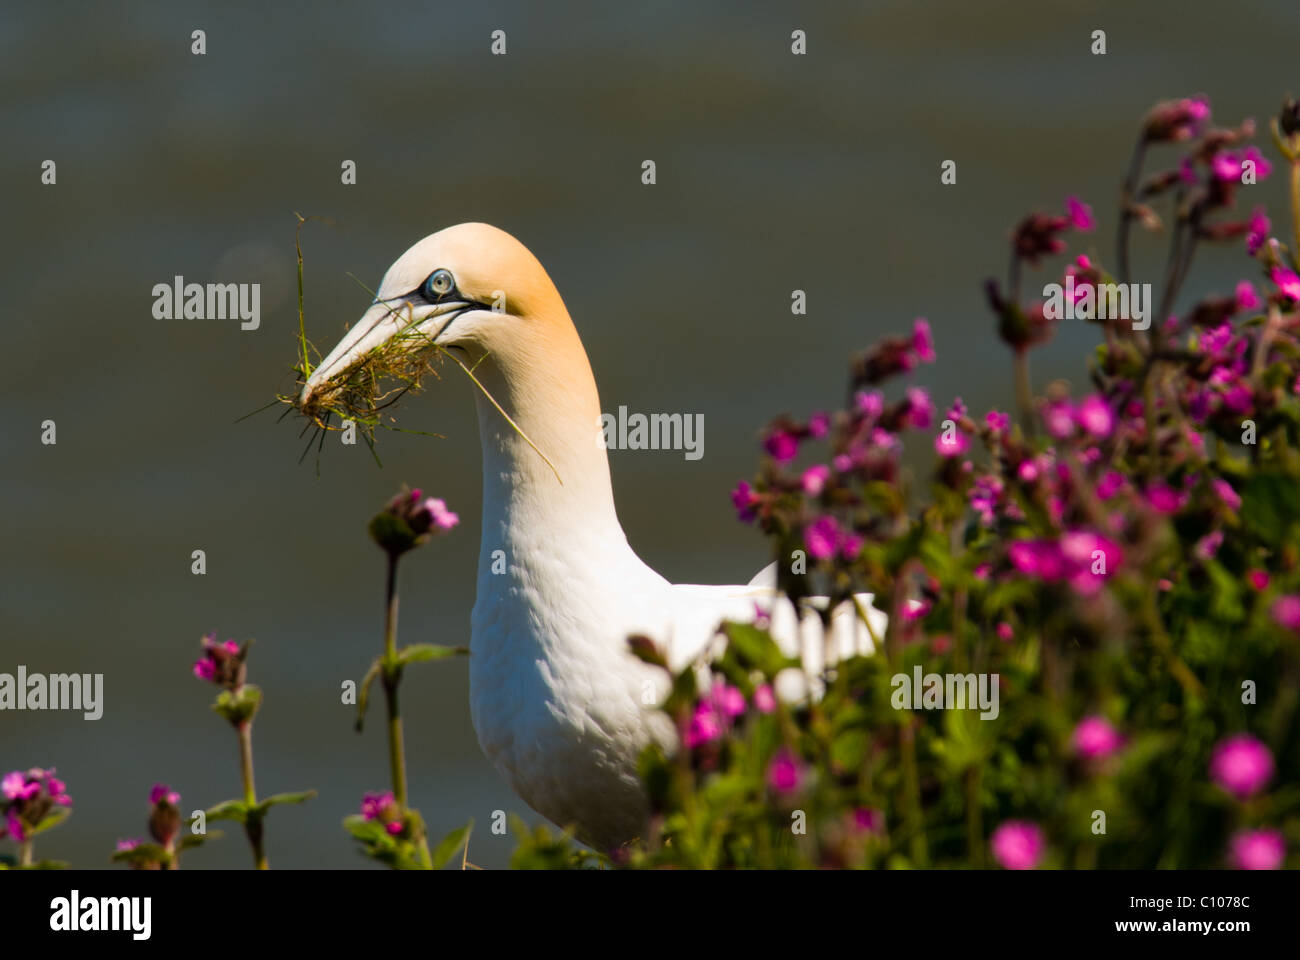 An image of a Gannet (Morus Sulidae) sitting on the edge of a cliff, gathering nesting material to build a nest - Stock Image